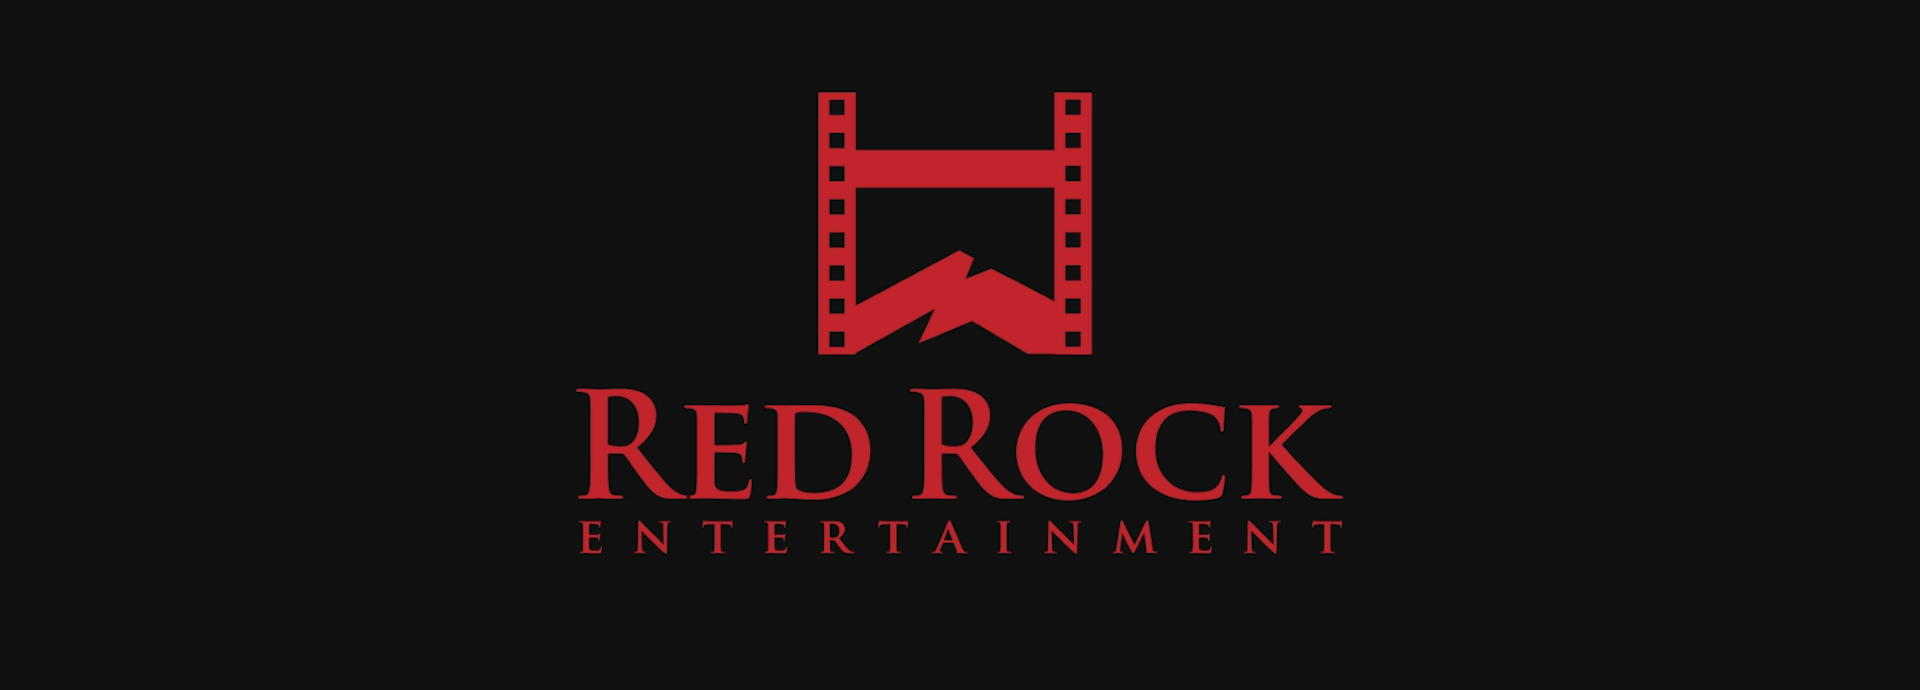 Red Rock Entertainment Partners Reviews and Testimonials